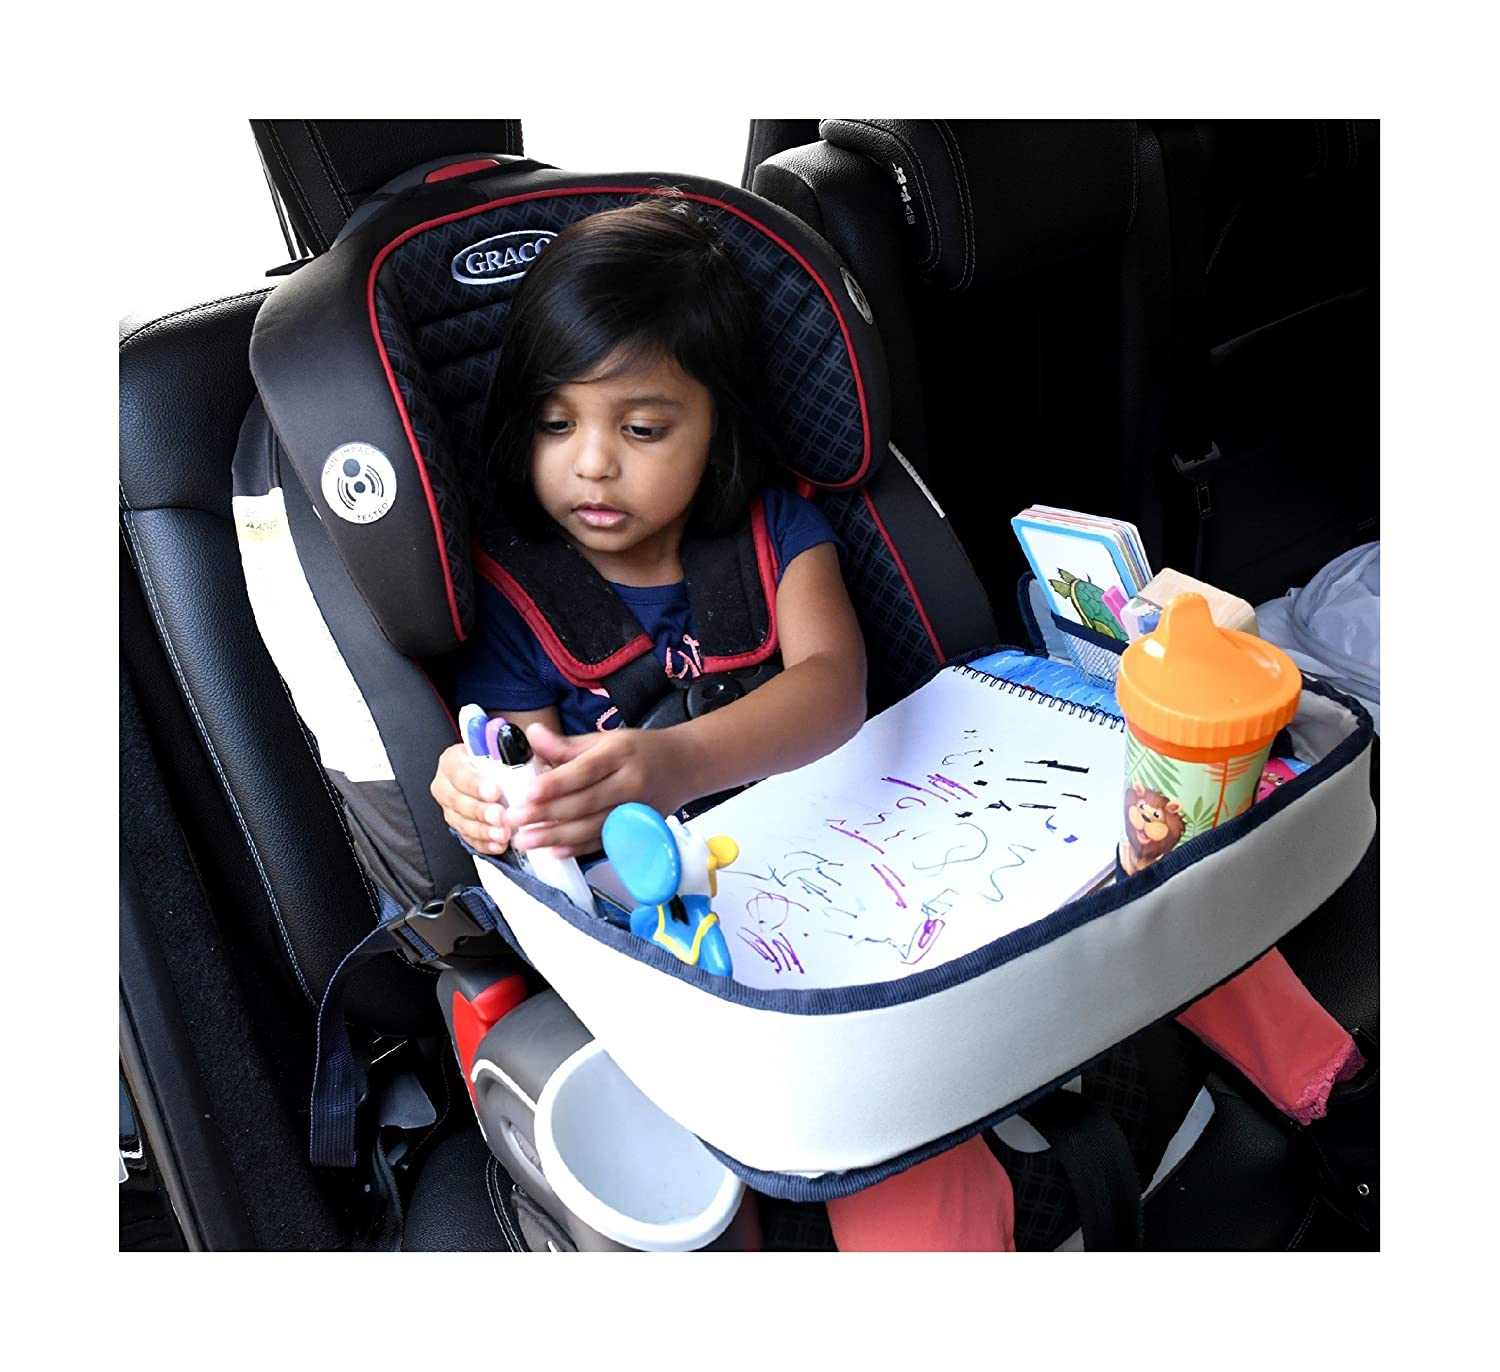 Lap Desk Travel Tray For Kids – Car Seat Activity Tray For Children & Toddlers – Multipurpose Backseat Entertainment & Organizer Accessory - Waterproof Material, Mesh Pockets & Cup Holder